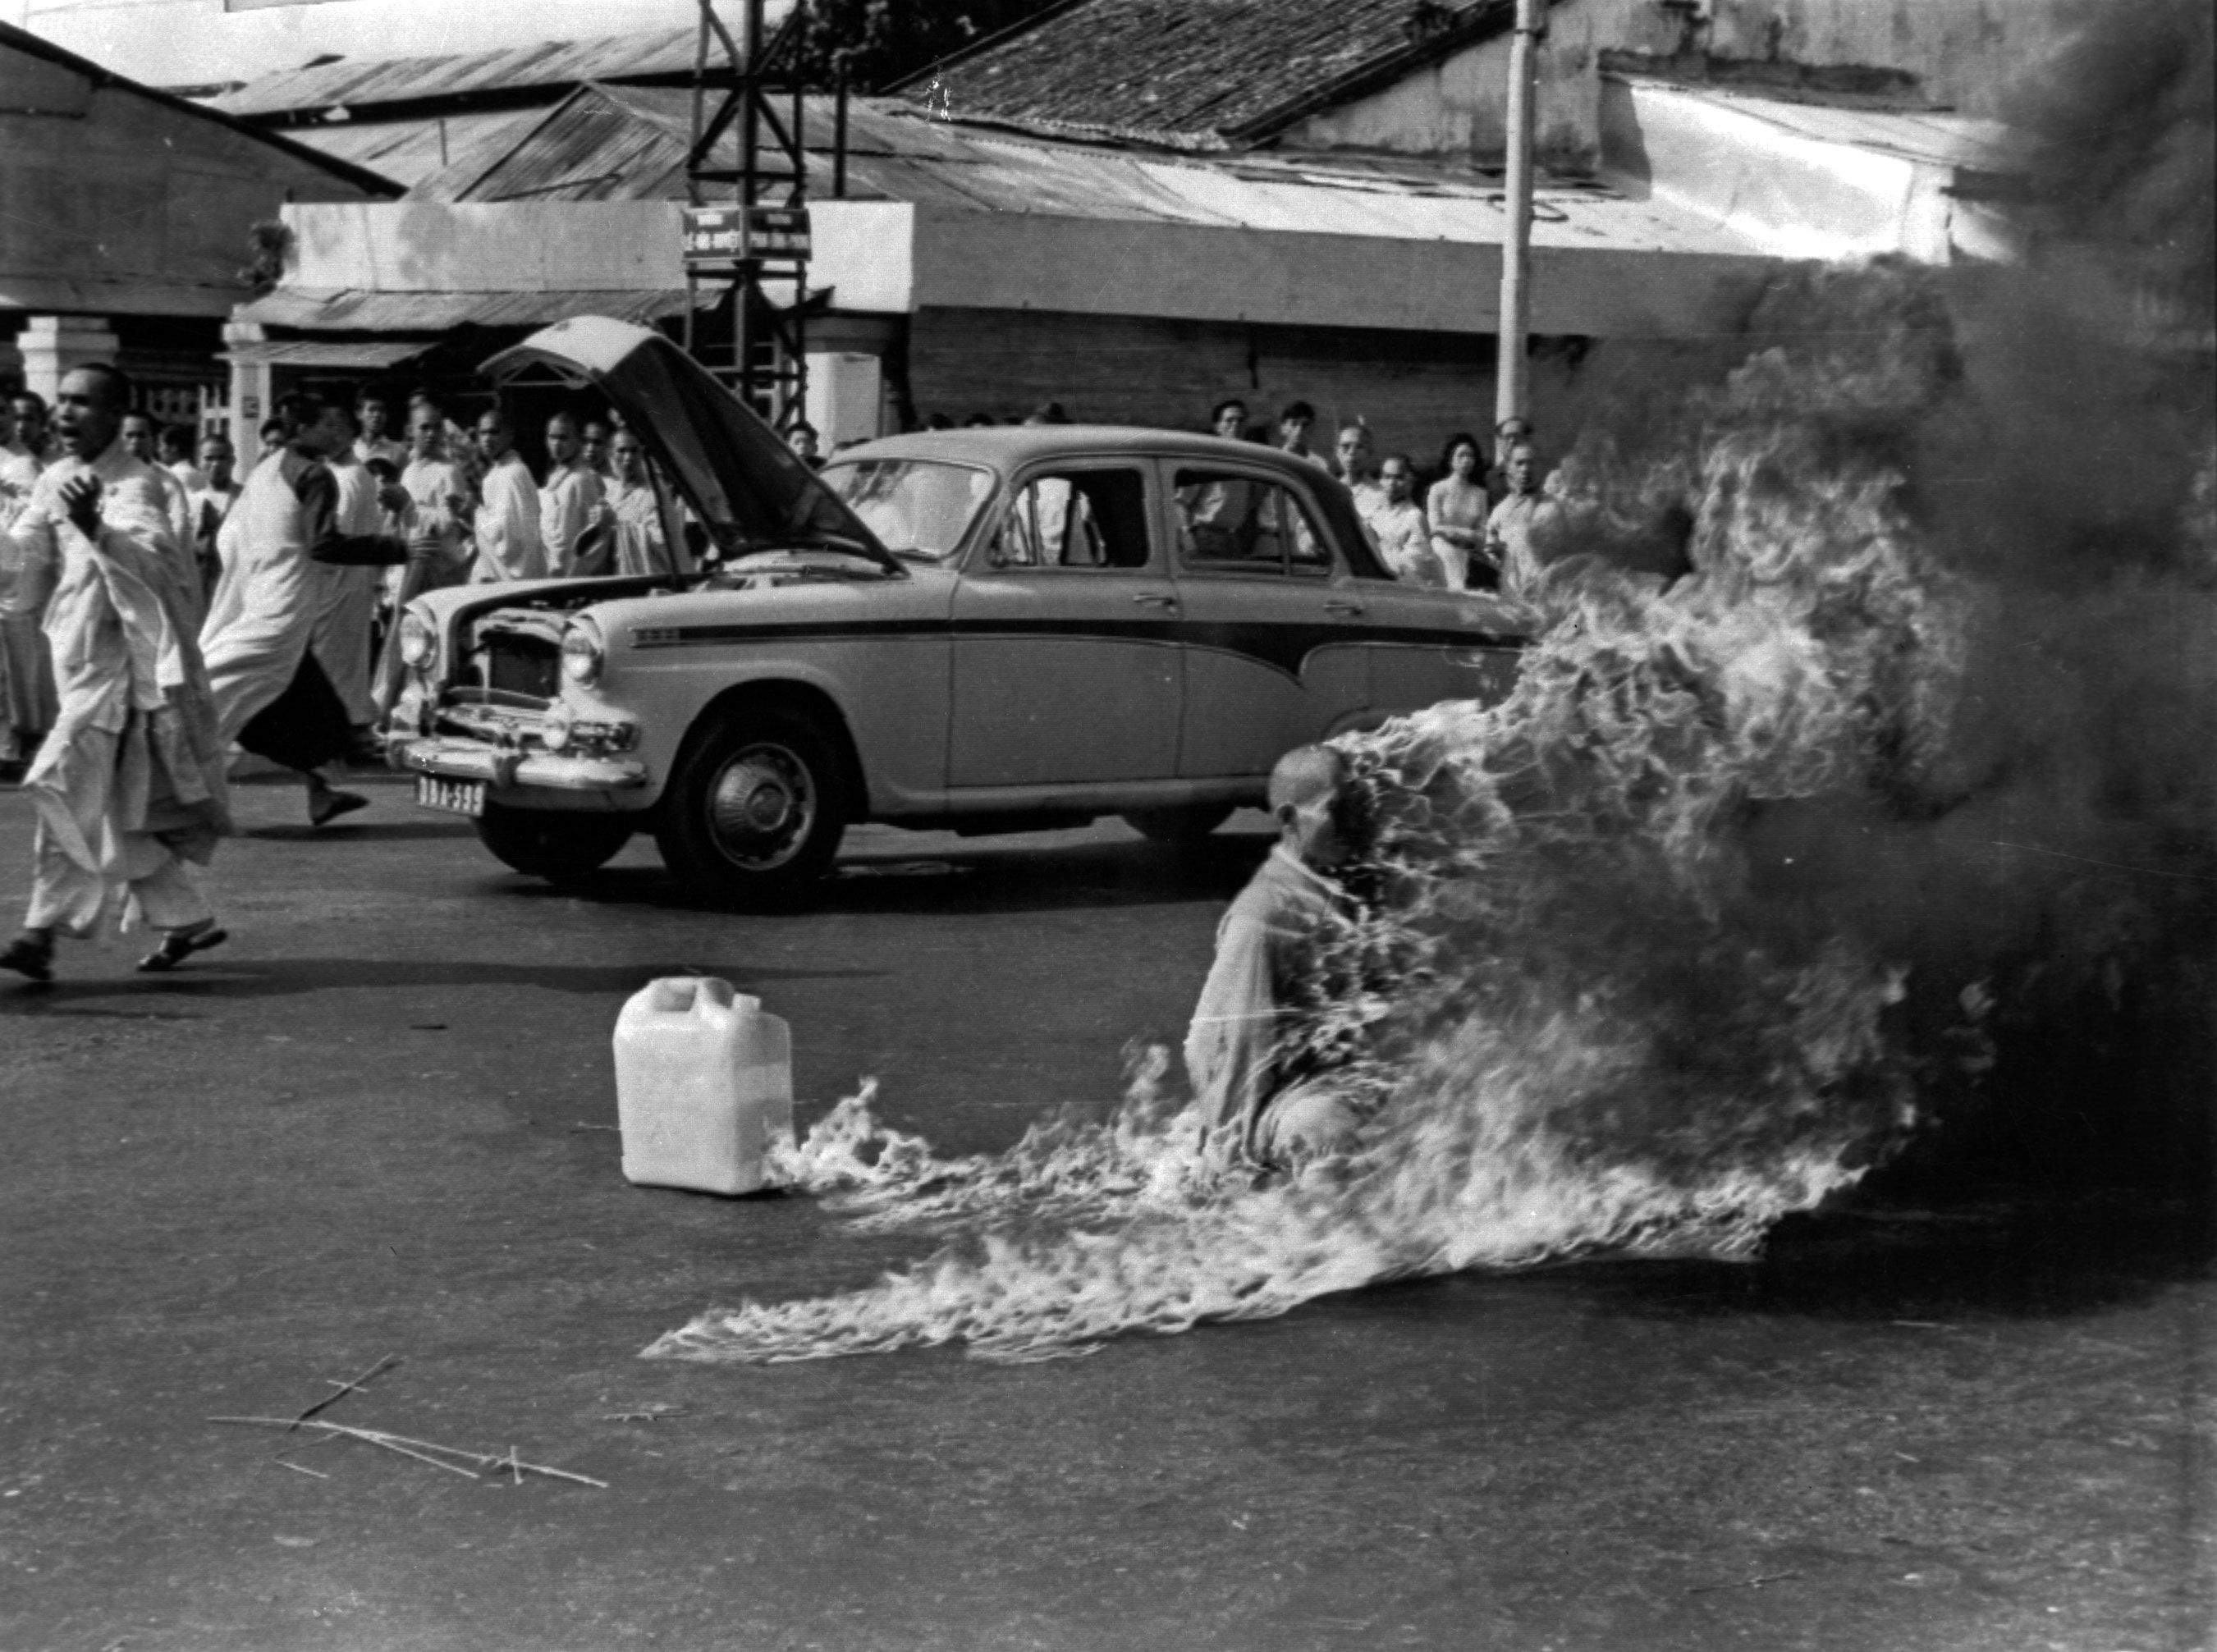 Mal Browne - Burning Monk - Saigon, Vietnam (1963) cult photo fotografia politica sacrificio monaco buddista brucia cultstories cult stories cultstories cinema cult story cultstory art culture music ipse dixit aneddoti citazioni frasi famose aforismi immagini foto personaggi cultura musica storie facts fatti celebrità vip cult spettacoli live performance concerto photo photography celebrity giornalismo scrittura libri genio pop icon attore cantante solista pittrice scultore attrice star diva sex symbol Suggestion Expanded sub-suggestions vietnam war vietnamnet vietnamese food vietnam map vietnam airlines vietnamese to english vietnamese dictionary vietnamese coffee vietnam veterans of america vietnam a vietnam airlines vietnam airlines review vietnam adoption vietnam area code vietnam airlines 787 vietnam air force vietnam abbreviation vietnam a television history vietnam agent orange vietnam airport vietnam b vietnam beaches vietnam battles vietnam boat people vietnam bay vietnam beach resorts vietnam boonie hat vietnam beer vietnam booby traps vietnam band vietnam bistro vietnam c vietnam currency vietnam cafe vietnam casualties vietnam country code vietnam currency to usd vietnam culture vietnam cave vietnam conflict vietnam cities vietnam china vietnam d vietnam draft vietnam dong to usd vietnam dong vietnam death toll vietnam draft lottery vietnam documentary vietnam dog vietnam draft numbers vietnam draft years vietnam dmz vietnam e vietnam embassy vietnam express vietnam economy vietnam era music vietnam era veteran vietnam era songs vietnam etf vietnam era vietnam embassy dc vietnam exchange rate vietnam f vietnam flag vietnam food vietnam facts vietnam flashback dog vietnam footage vietnam flights vietnam flashback vietnam french vietnam fruit vietnam flag meaning vietnam g vietnam government vietnam girls vietnam garden vietnam geography vietnam gdp vietnam grill missoula vietnam gear vietnam games vietnam google vietnam google maps vietnam h vietnam history vietnam helicopters vietnam house vietnam holidays vietnam hetalia vietnam hanoi vietnam halong bay vietnam helicopter pilots association vietnam hd vietnam hotels vietnam i vietnam in hd vietnam idol vietnam idol 2015 vietnam itinerary vietnam in december vietnam islands vietnam idol 2015 chung ket vietnam in november vietnam independence vietnam in spanish vietnam j vietnam jungle boots vietnam jokes vietnam jets vietnam jimmy cliff vietnam jungle vietnam jobs vietnam jungle fatigues vietnam japan vietnam jacket vietnam jeep vietnam k vietnam kitchen vietnam kratom vietnam kia vietnam keyboard vietnam knife vietnam kill ratio vietnam korea vietnam karaoke vietnam kilo submarine vietnam kiesza vietnam l vietnam language vietnam location vietnam local time vietnam lonely planet vietnam latitude vietnam largest cave vietnam literacy rate vietnam last names vietnam leader vietnam lyrics vietnam m vietnam map vietnam memorial vietnam music vietnam money vietnam movies vietnam memorial names vietnam moving wall vietnam military vietnam massacre vietnam medals vietnam n vietnam news vietnam net vietnam navy vietnam next top model 2015 vietnam new year vietnam national anthem vietnam national flower vietnam national animal vietnam natural resources vietnam noodle vietnam o vietnam on map vietnam on world map vietnam or viet nam vietnam official language vietnam or thailand vietnam orange vietnam outlet vietnam or cambodia vietnam one vietnam olympics vietnam p vietnam population vietnam poblano vietnam pow vietnam protest songs vietnam pho vietnam postal code vietnam protests vietnam pictures vietnam prostitution vietnam photos vietnam q vietnam quotes vietnam quiz vietnam quizlet vietnam quagmire vietnam war vietnam quality of life viet nam que huong toi vietnam quan su vietnam quang tri vietnam quilts vietnam r vietnam restaurant vietnam religion vietnam real estate vietnam rainy season vietnam resorts vietnam restaurant philadelphia vietnam radio vietnam ribbons vietnam rock songs vietnam restaurant dallas vietnam s vietnam songs vietnam service medal vietnam syndrome vietnam sniper vietnam saigon vietnam stock market vietnam stories vietnam special top gear vietnam stock exchange vietnam slang vietnam t vietnam time vietnam travel vietnam time zone vietnam tourism vietnam today vietnam tours vietnam tom vietnam tunnel rats vietnam traveling wall vietnam tourist visa vietnam u vietnam us relations vietnam us casualties vietnam us embassy vietnam unemployment rate vietnam uniforms vietnam upper east side vietnam us deaths vietnam unknown soldier vietnam usd exchange rate vietnam university vietnam v vietnam veterans of america vietnam visa vietnam veterans memorial vietnam visa on arrival vietnam veteran vietnam visa fee vietnam veterans donations vietnam veterans memorial fund vietnam visa application vietnam veterans pickup vietnam w vietnam war vietnam war memorial vietnam war facts vietnam war songs vietnam wall vietnam weather vietnam war casualties vietnam war music vietnam war timeline vietnam war definition vietnam x vietnam x reader vietnam xbox 360 games vietnam xbmc vietnam xbox one vietnam x china vietnam x ray vietnam express vietnam xm177 vietnam x thailand hetalia vietnam xo tours vietnam y vietnam years vietnam yahoo vietnam youtube vietnam youtube music vietnam yellow pages vietnam yearly weather vietnam yelp vietnam yoga retreat vietnam yorkville vietnam youtube war vietnam z vietnam zip code vietnam zippo vietnam zippo lighters vietnam zoo vietnam zippo ebay vietnam zombie movement vietnam zippo lighters for sale vietnam zombies vietnam zing vietnam zippo book